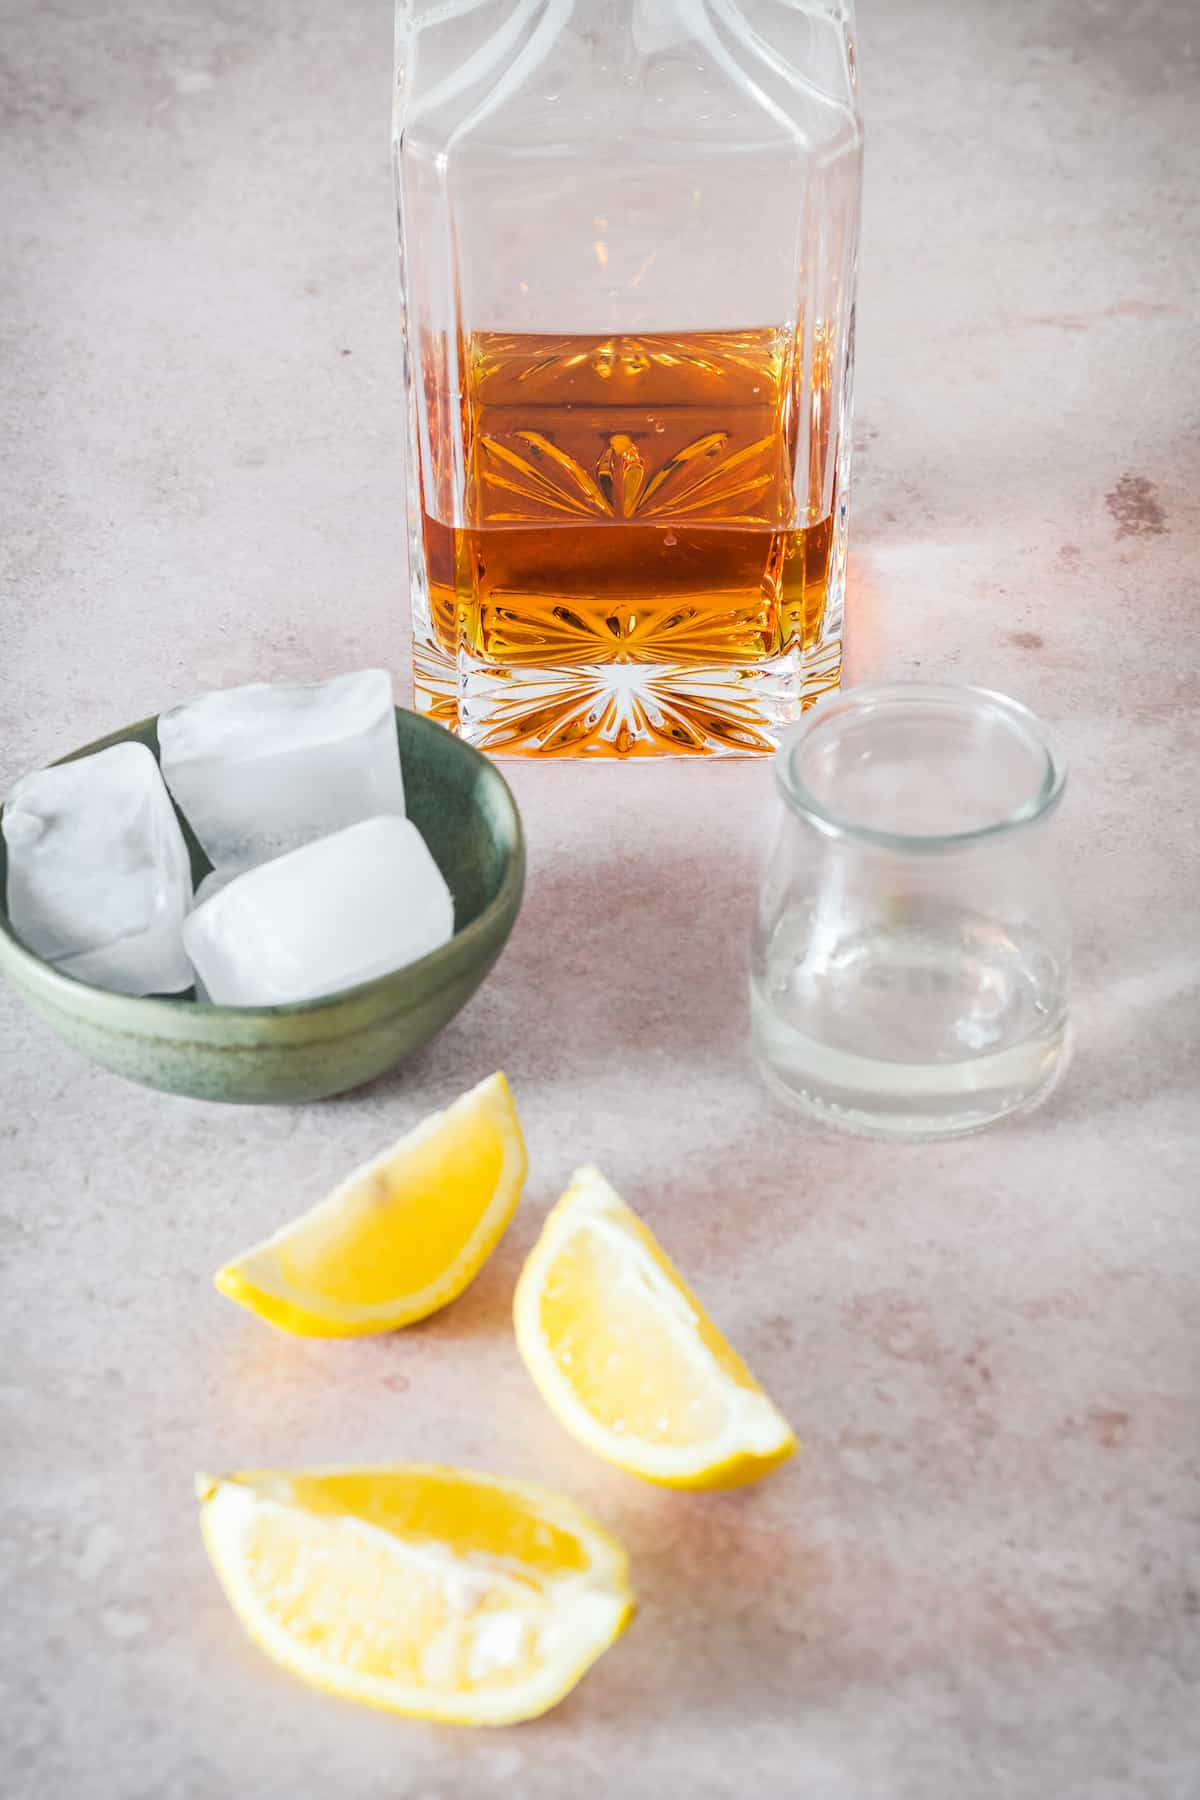 Whiskey sour ingredients - whiskey, ice, and lemon slices